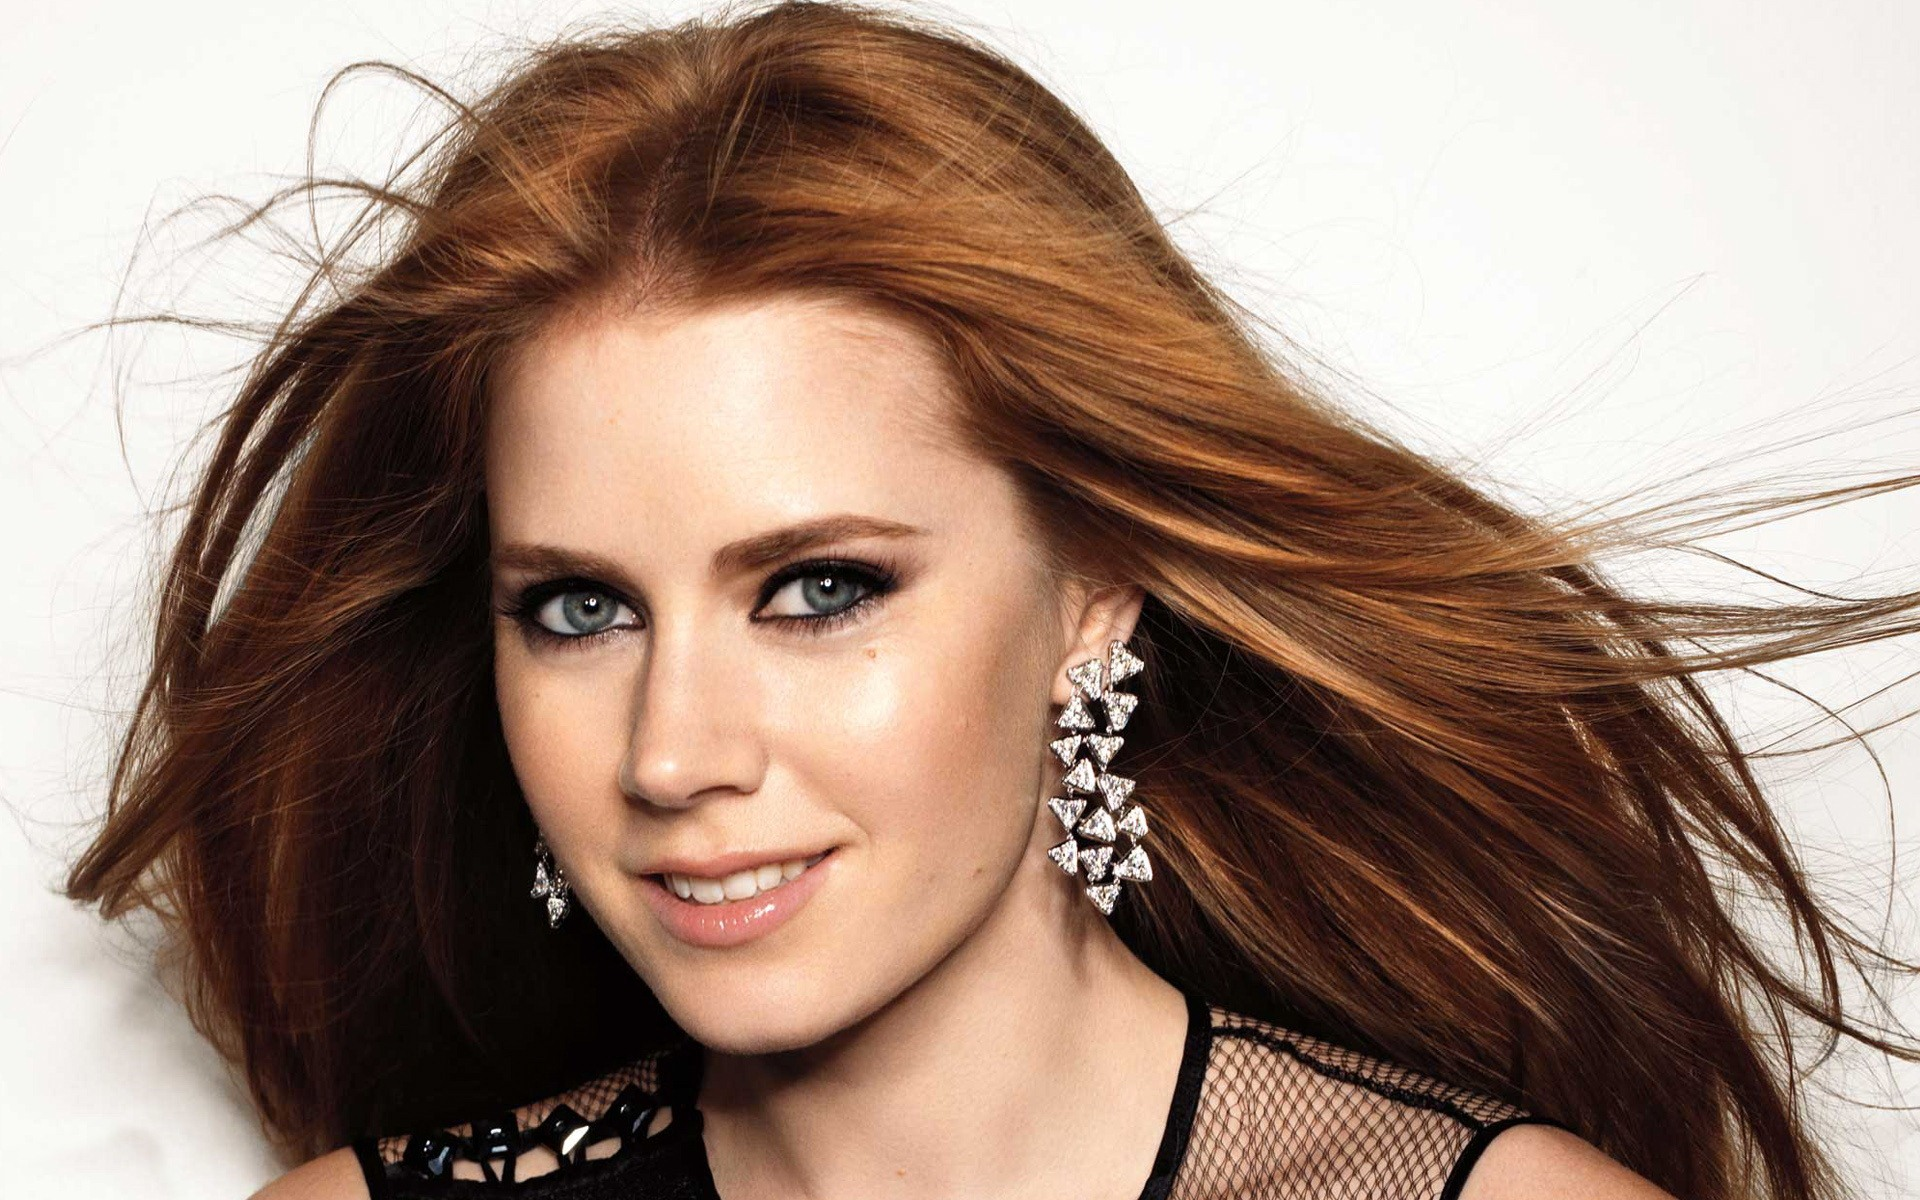 amazing amy adams fantastic stylish eye look still hd background free desktop wallpaper mobile